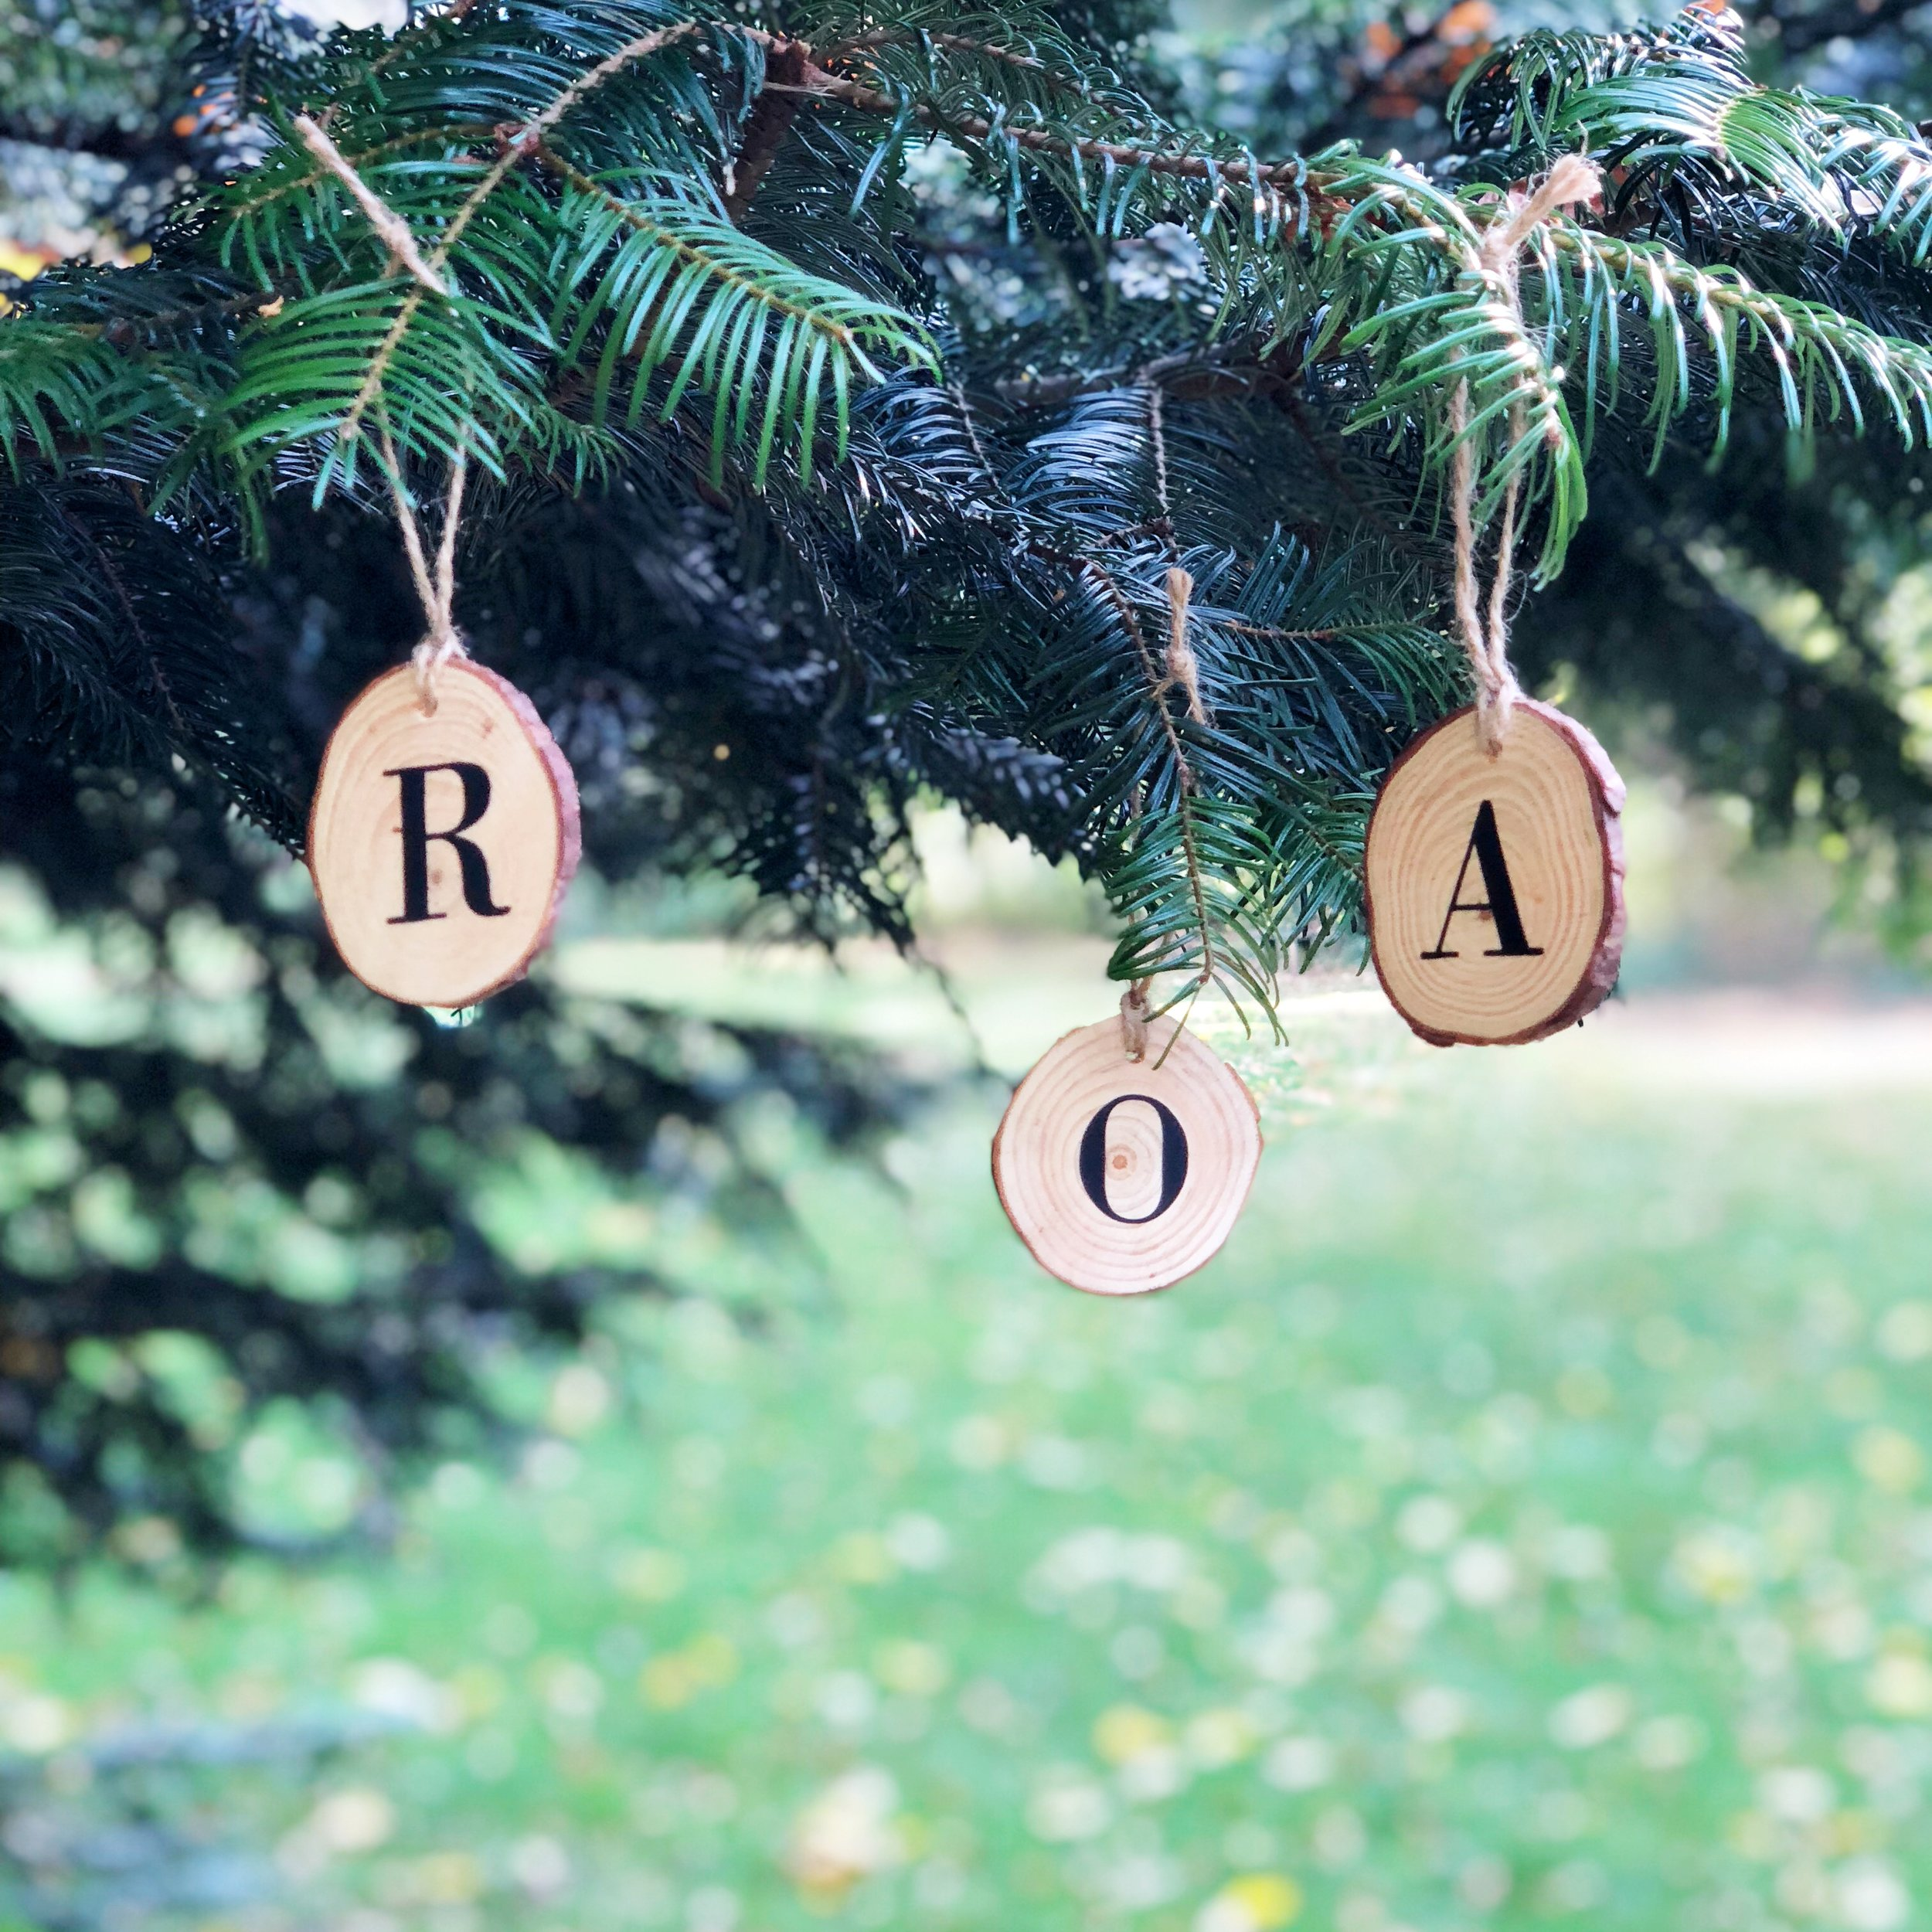 Personalised Wood Ornament   : £5  A classic serif letter, on a rustic pine wood slice. Perfect personalisation for your tree. Get one for the whole family!   - Lone Owl Studio